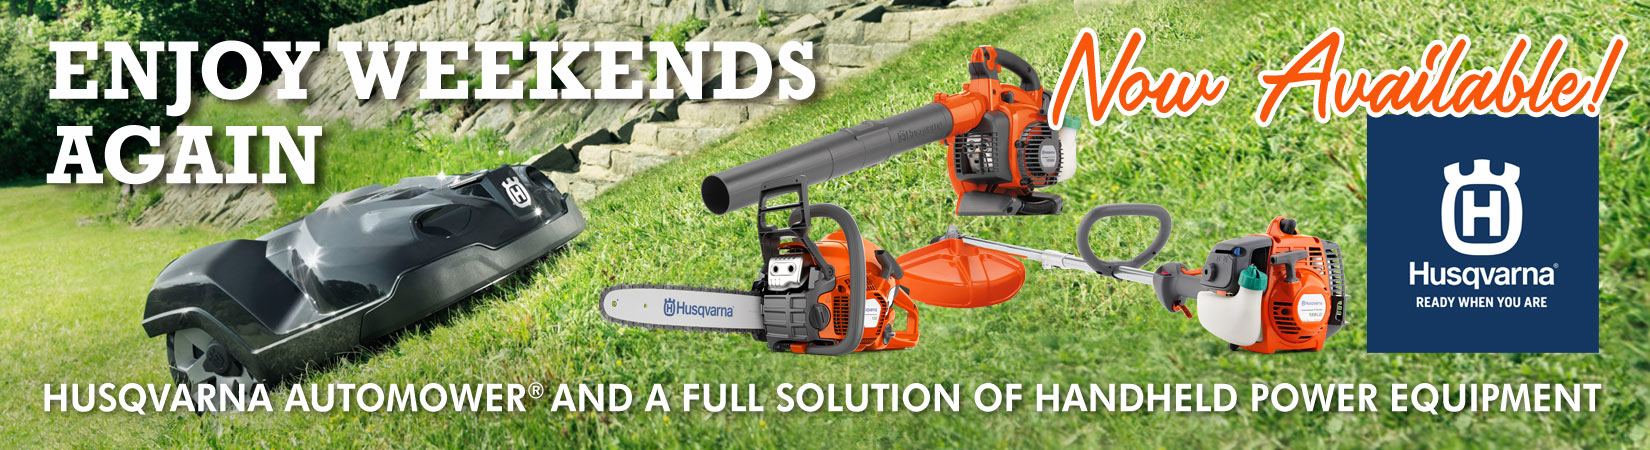 Husqvarna Now Available